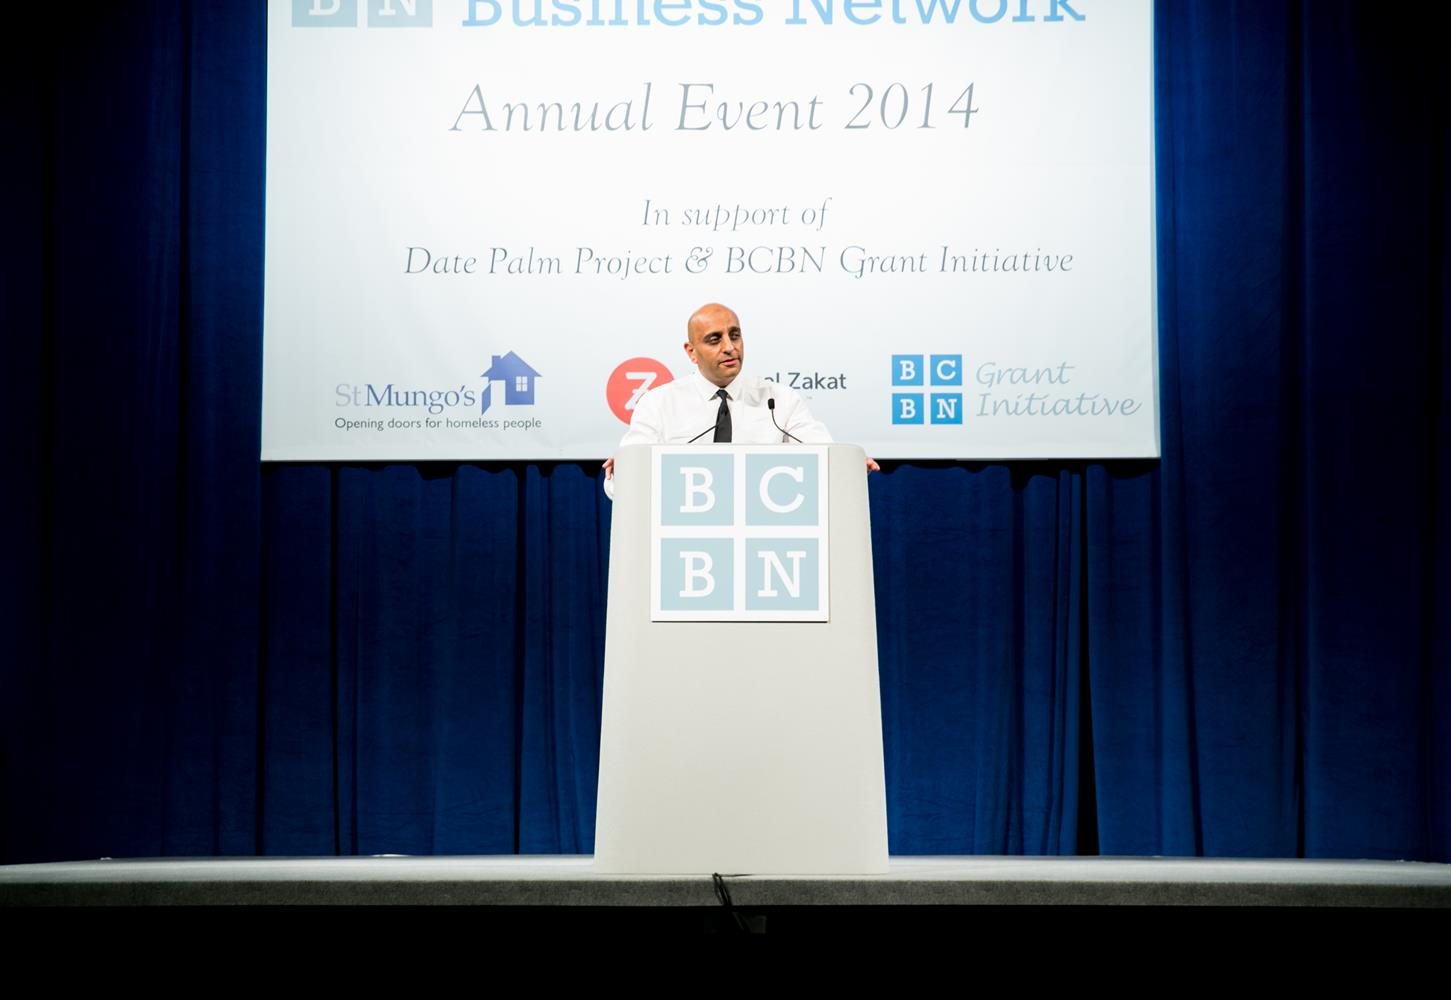 Corporate Event Photography of man on podium taken by MAKSAM Corporate photographer